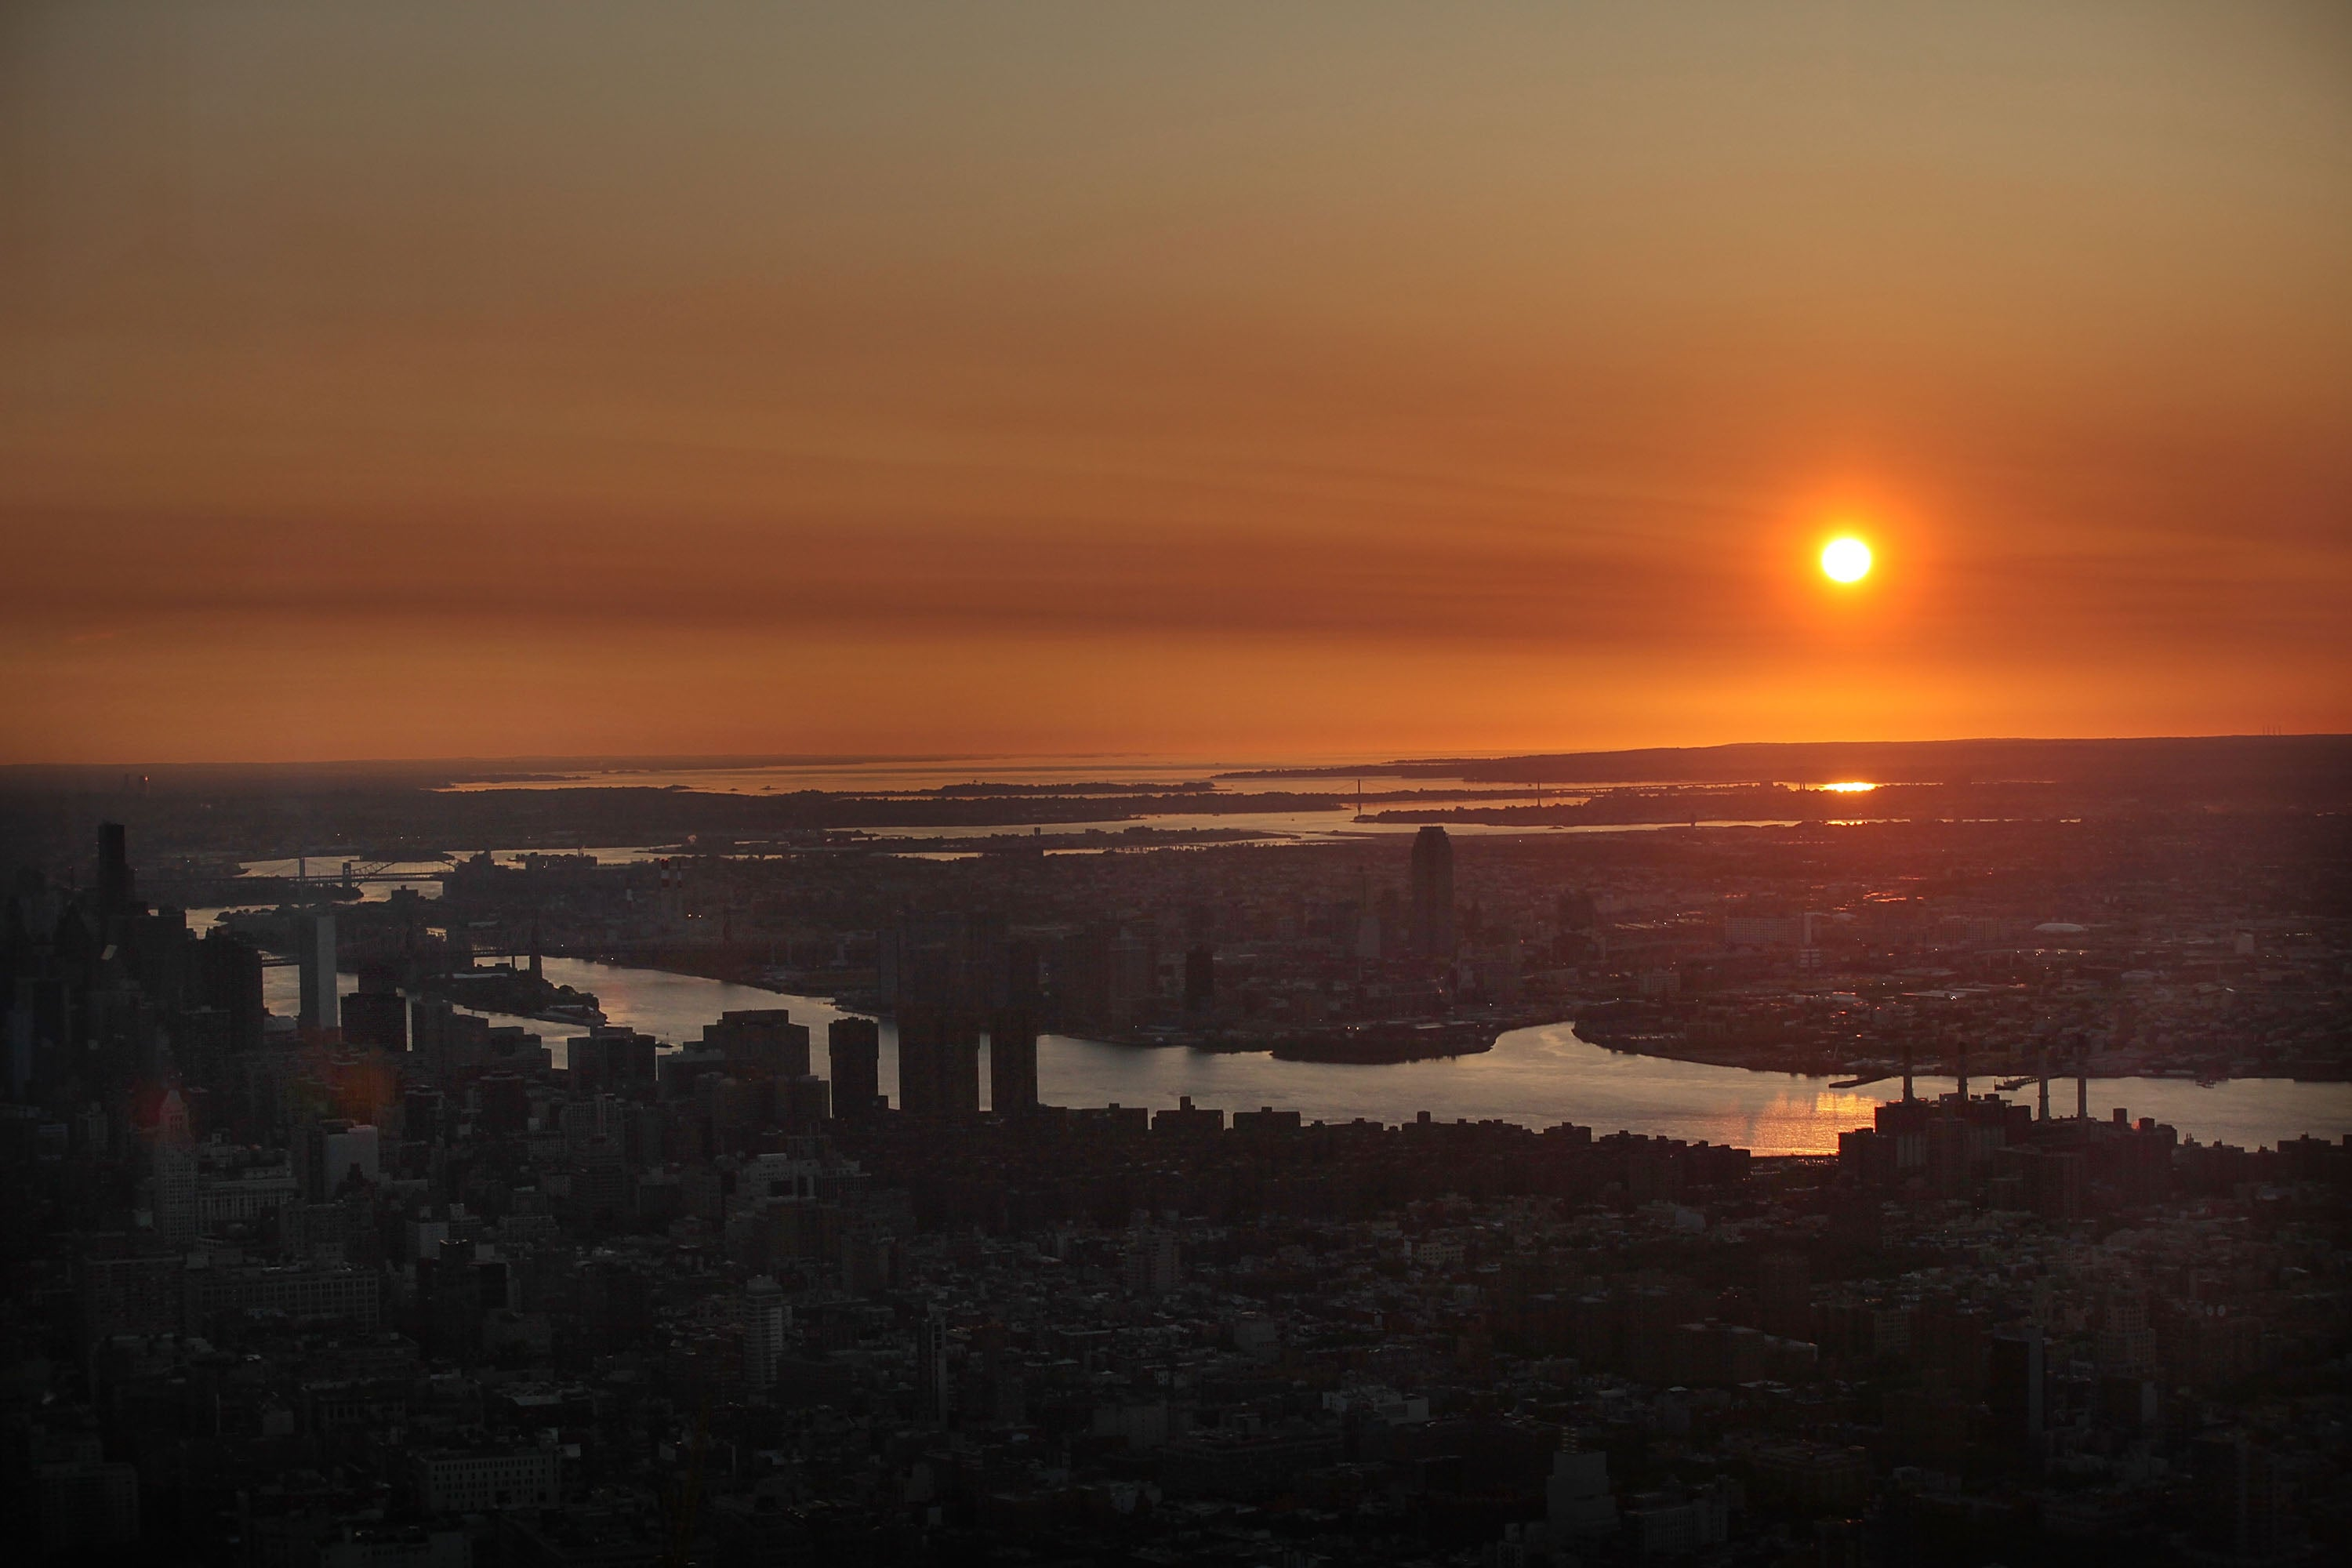 This Is What Sunrise Looks Like From the Tallest Building in America